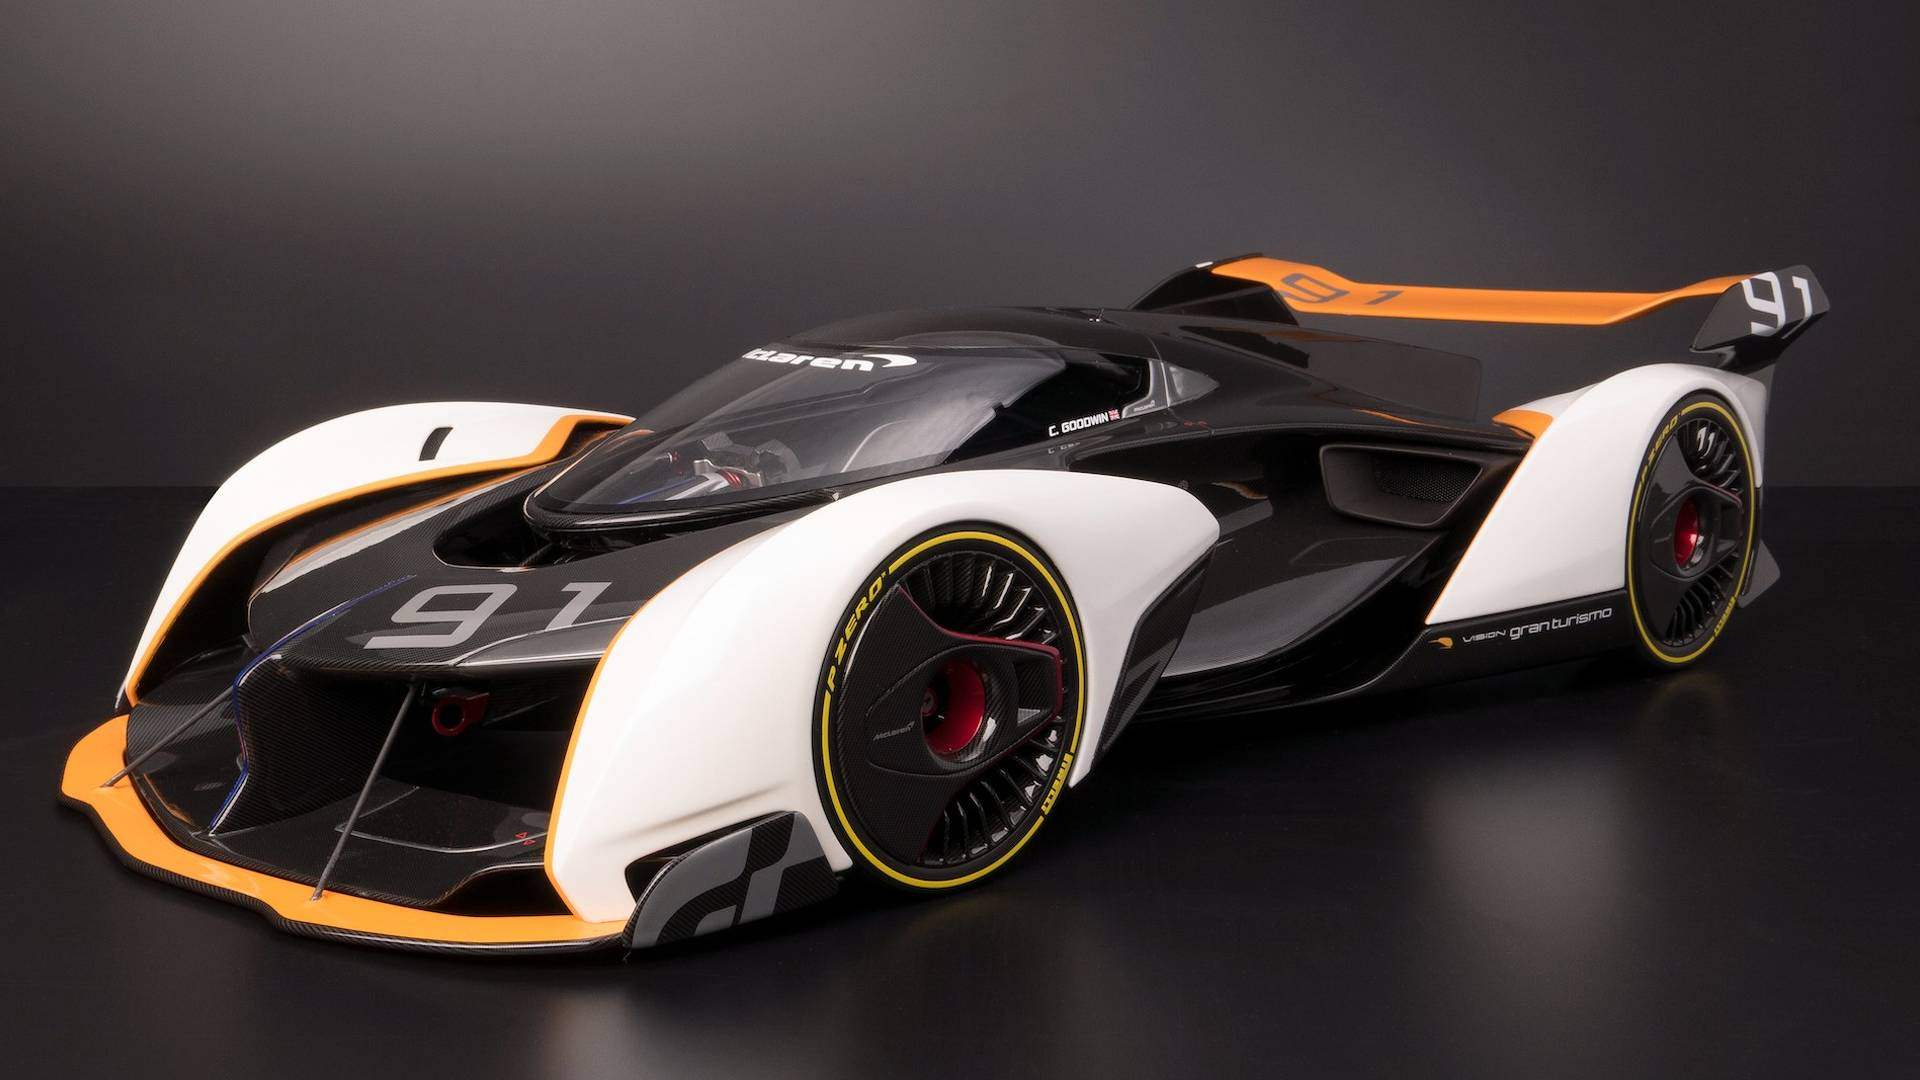 mclaren-ultimate-vision-gt-scale-model (4)